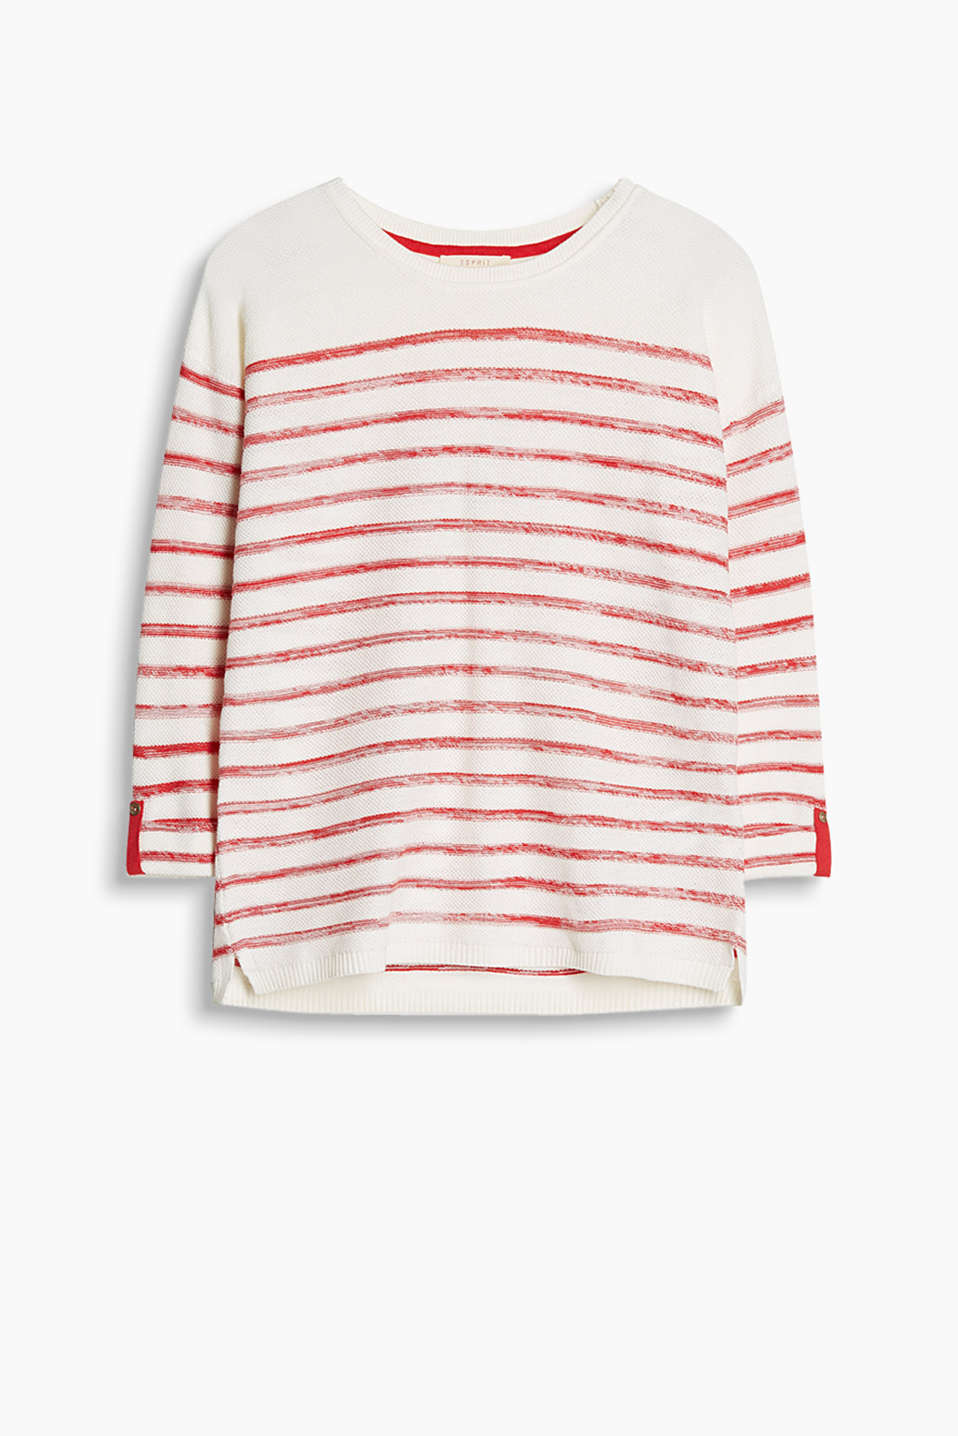 Lightweight cotton jumper with fixed turn-up sleeves and textured stripes